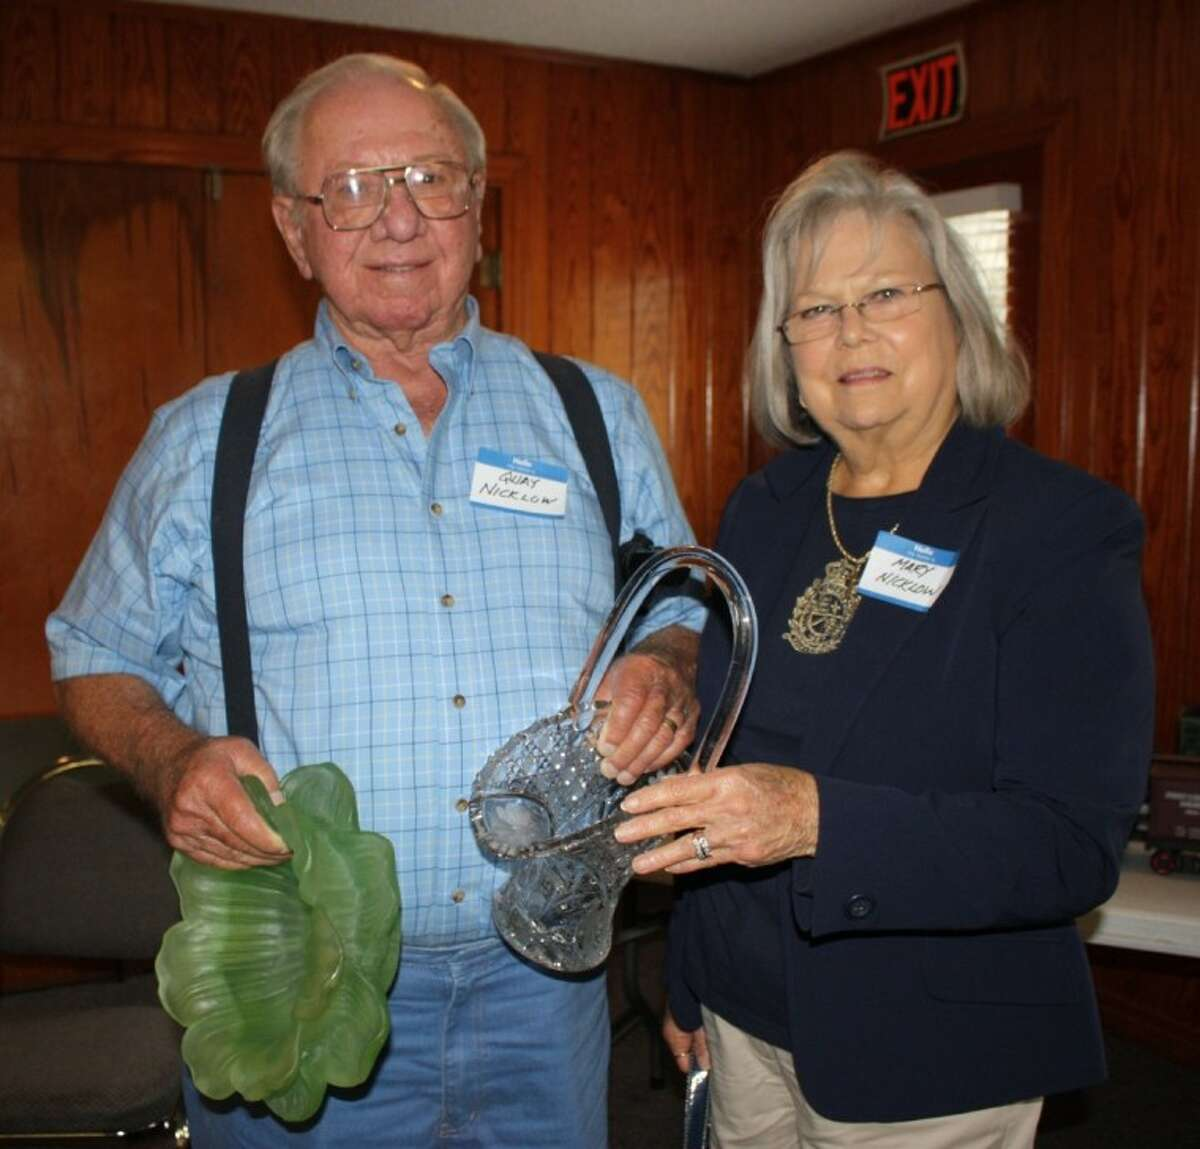 Quay Nicklow, left, and Mary Nicklow, right, display some of the silent auction items they won at the Coldspring Public Library's annual book review and dessert party.